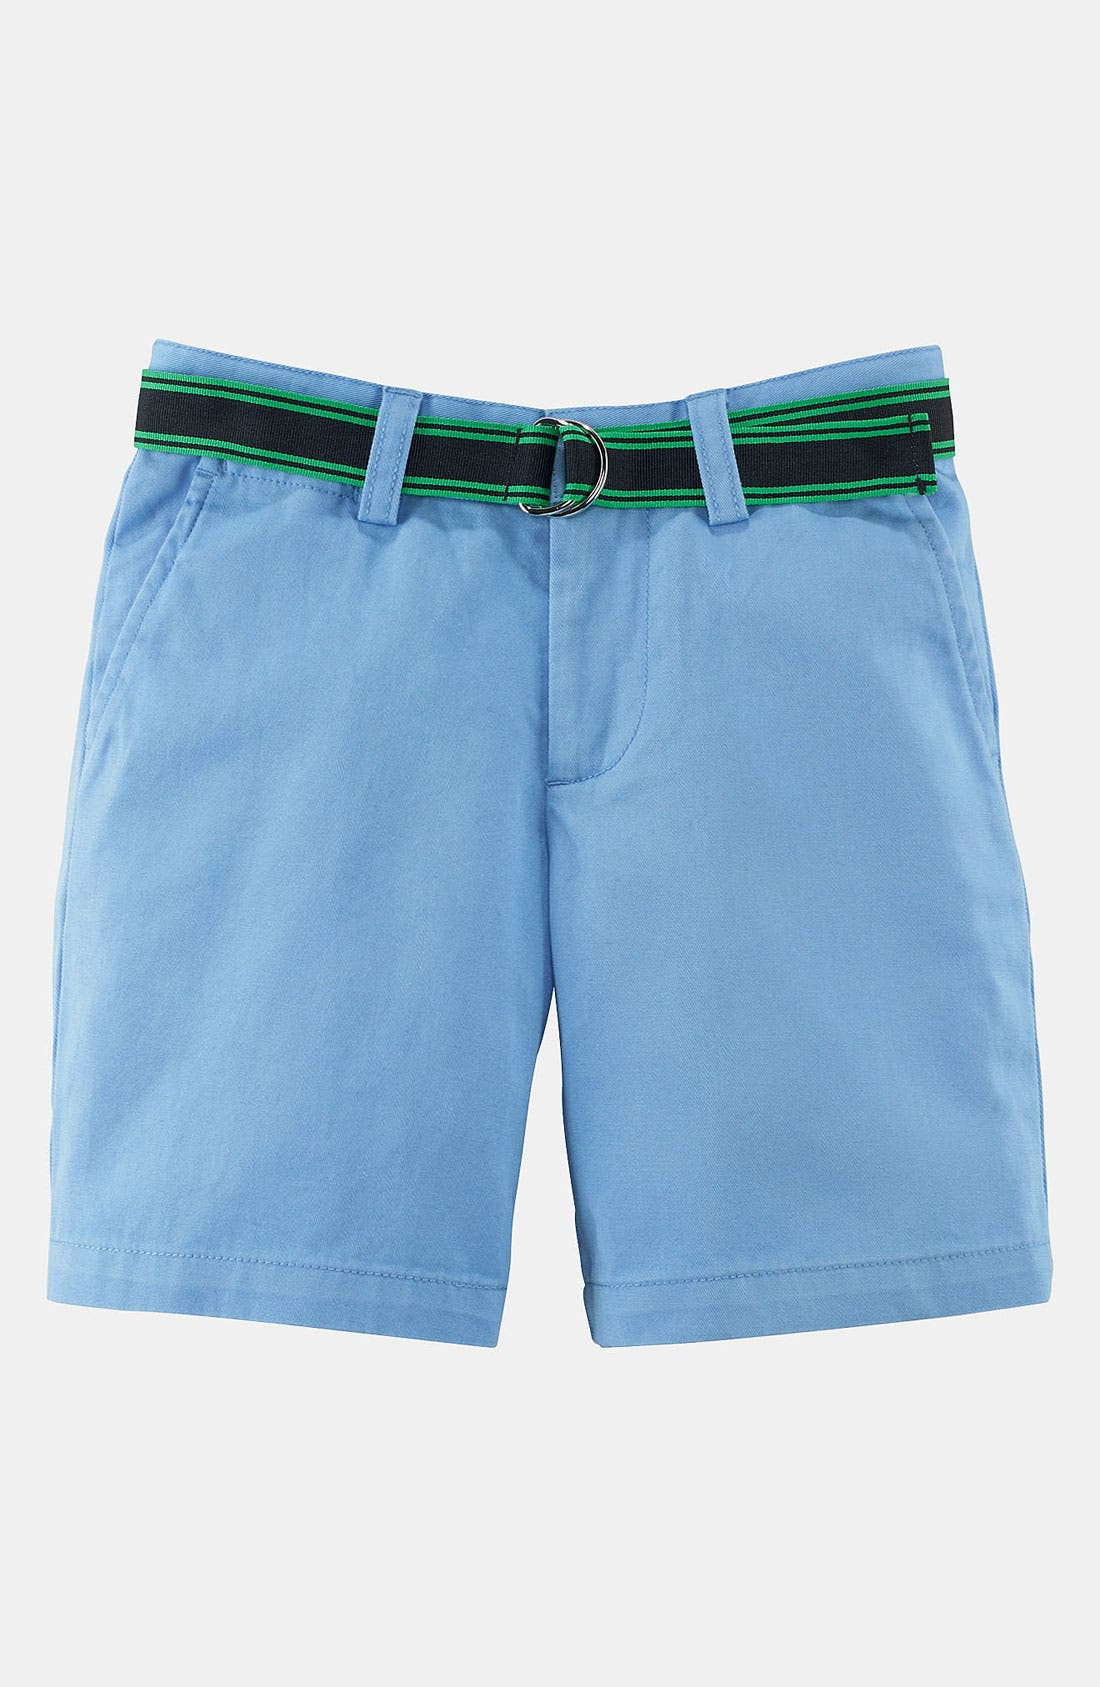 Main Image - Ralph Lauren Shorts (Toddler)